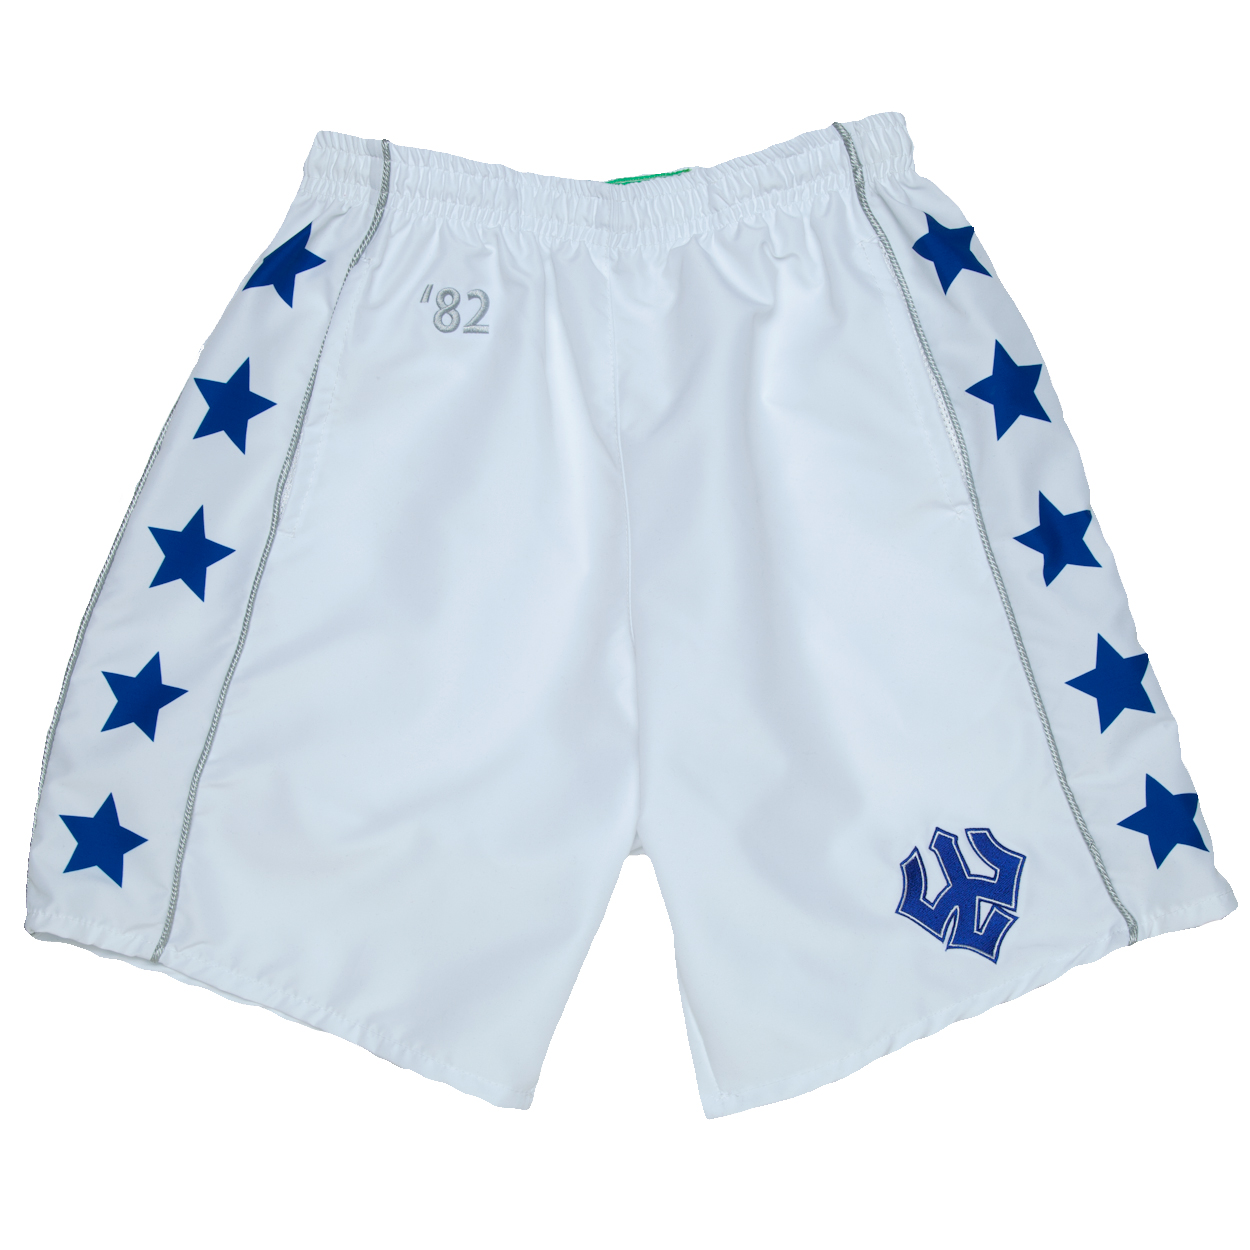 Throwback Lacrosse Shorts, White & Royal